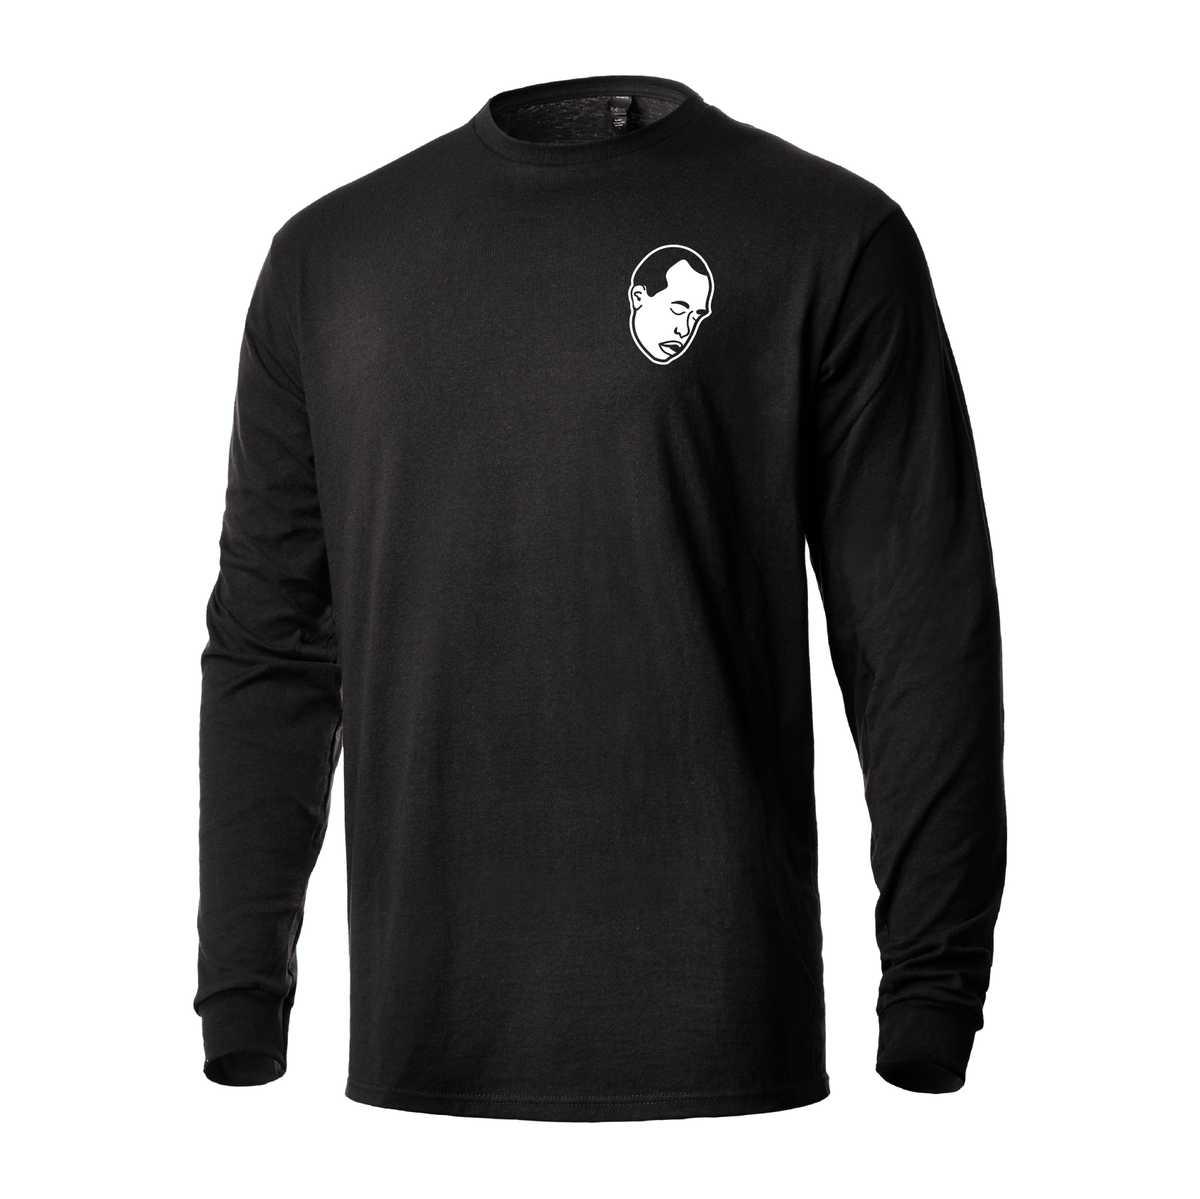 DOPEY TRAIN LONG SLEEVE UNISEX SHIRT